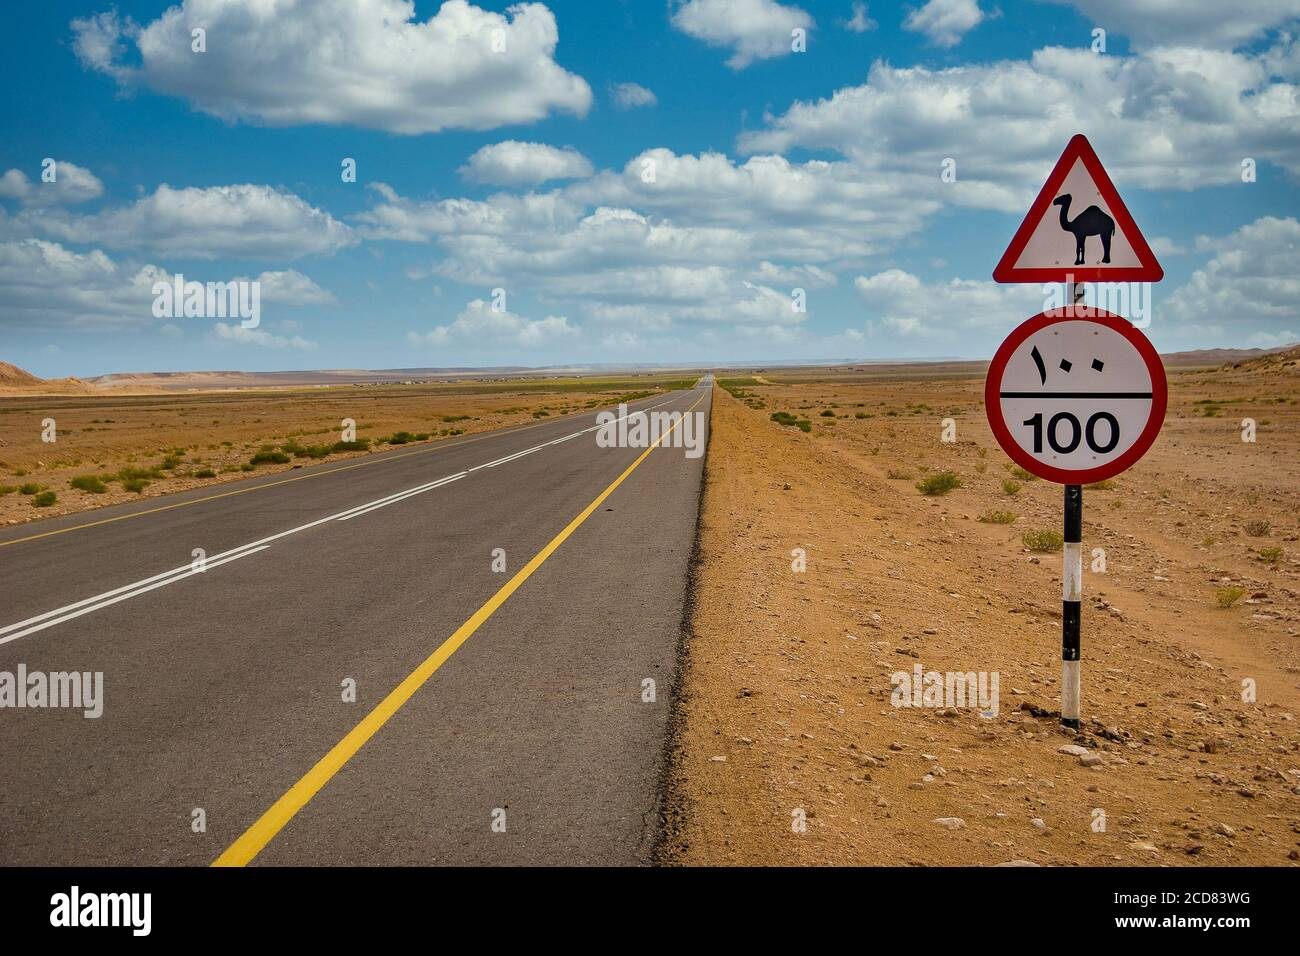 Camel road sign and speed limit road sign along a desert road in Oman Stock Photo